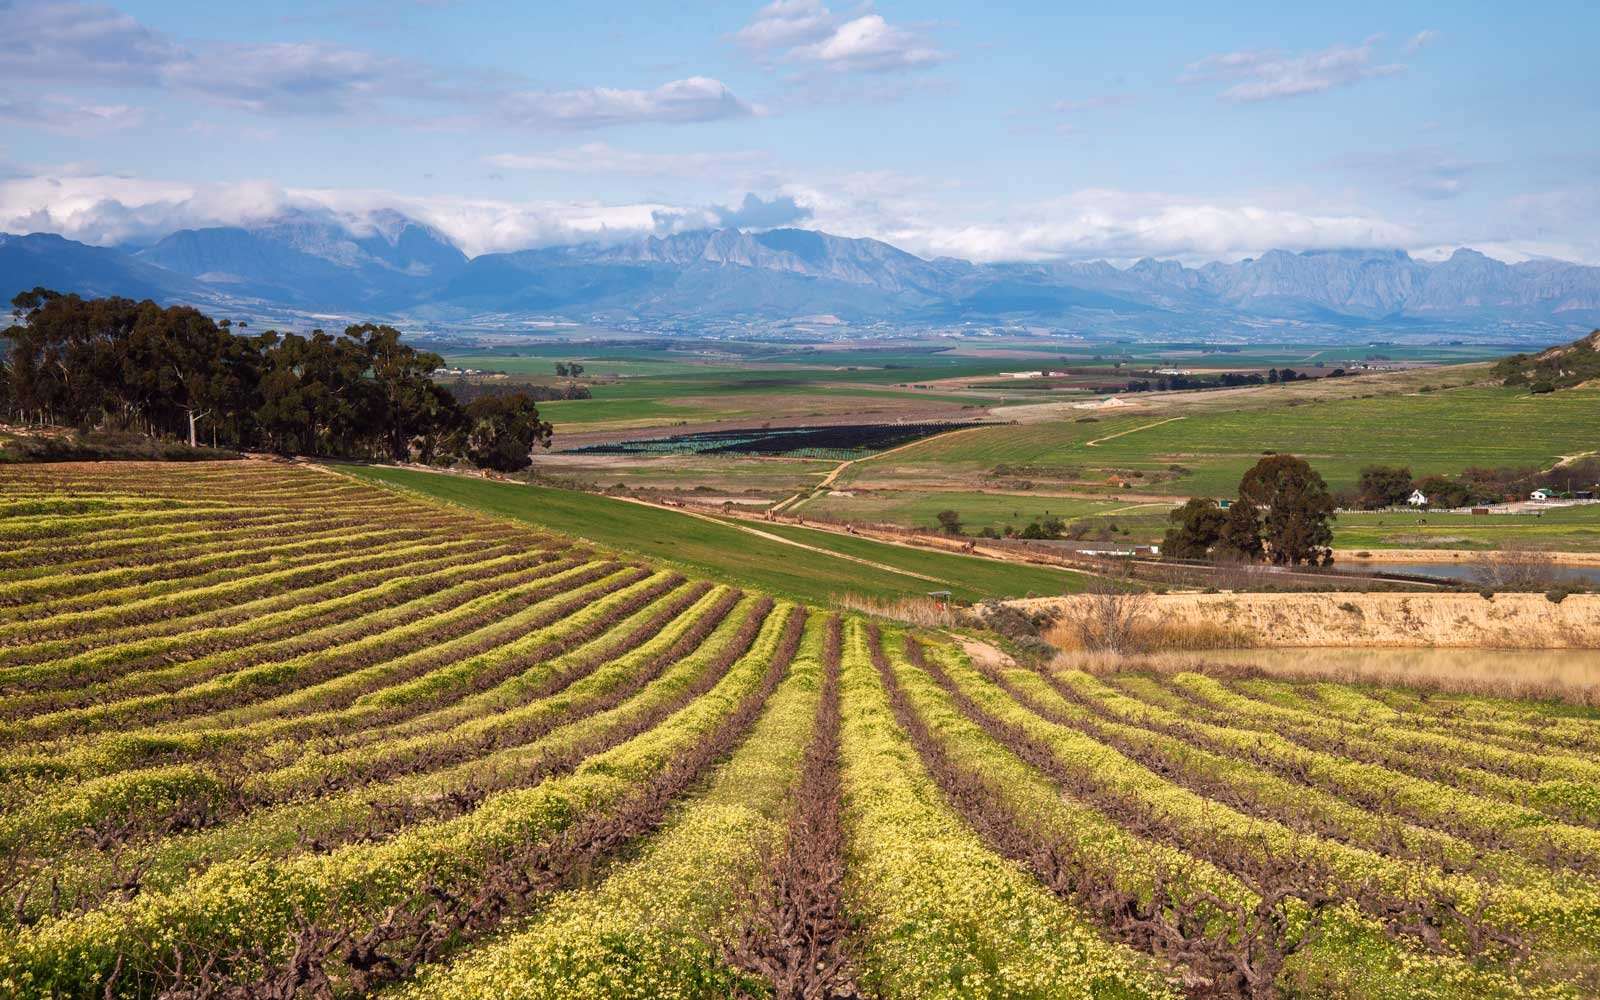 Vineyards in Swartland, South Africa